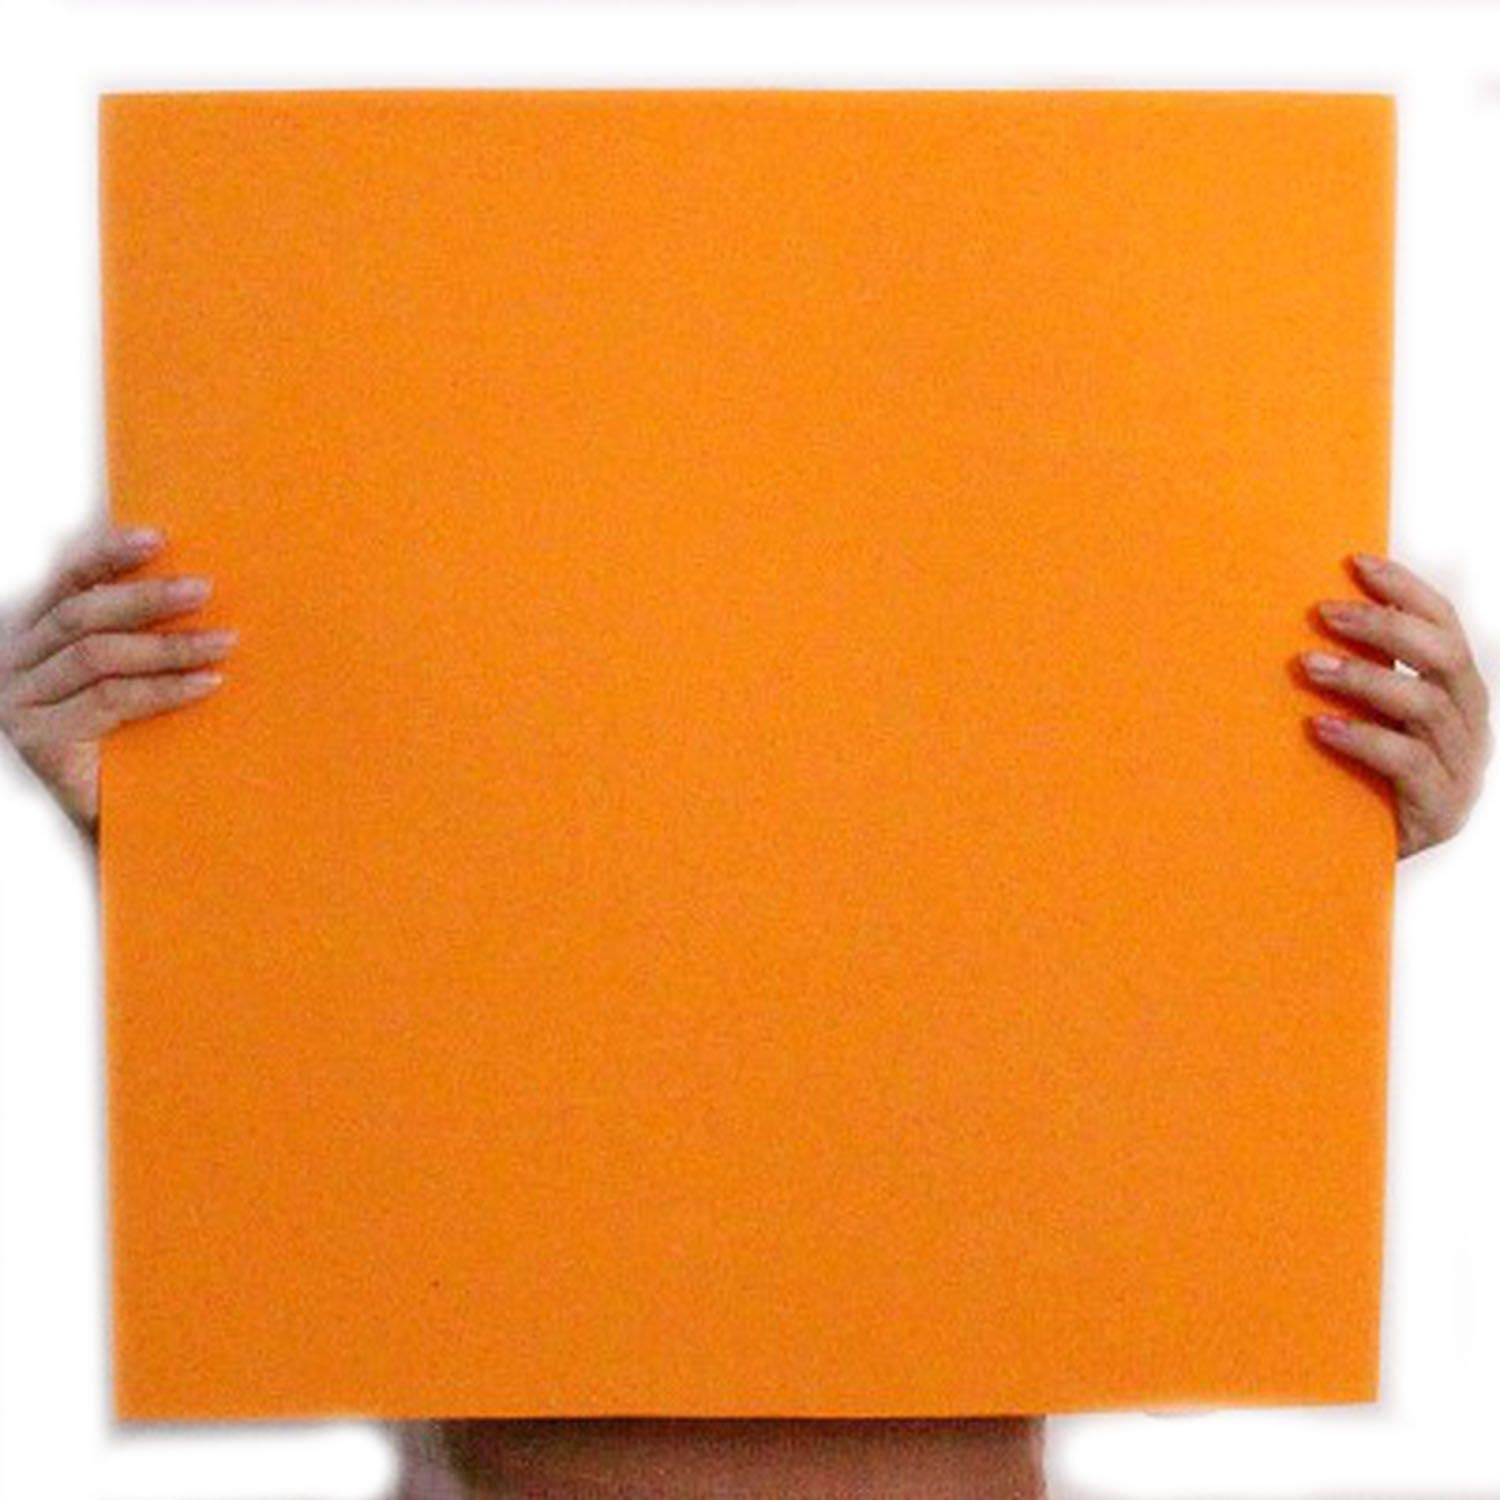 A5 one size wall8CC 5050 cm 2mm Eva Foam Paper Handmade Foam Sheets Sponge Paper Diy Handcraft Materials Multicolour Flower Prop Party,A23